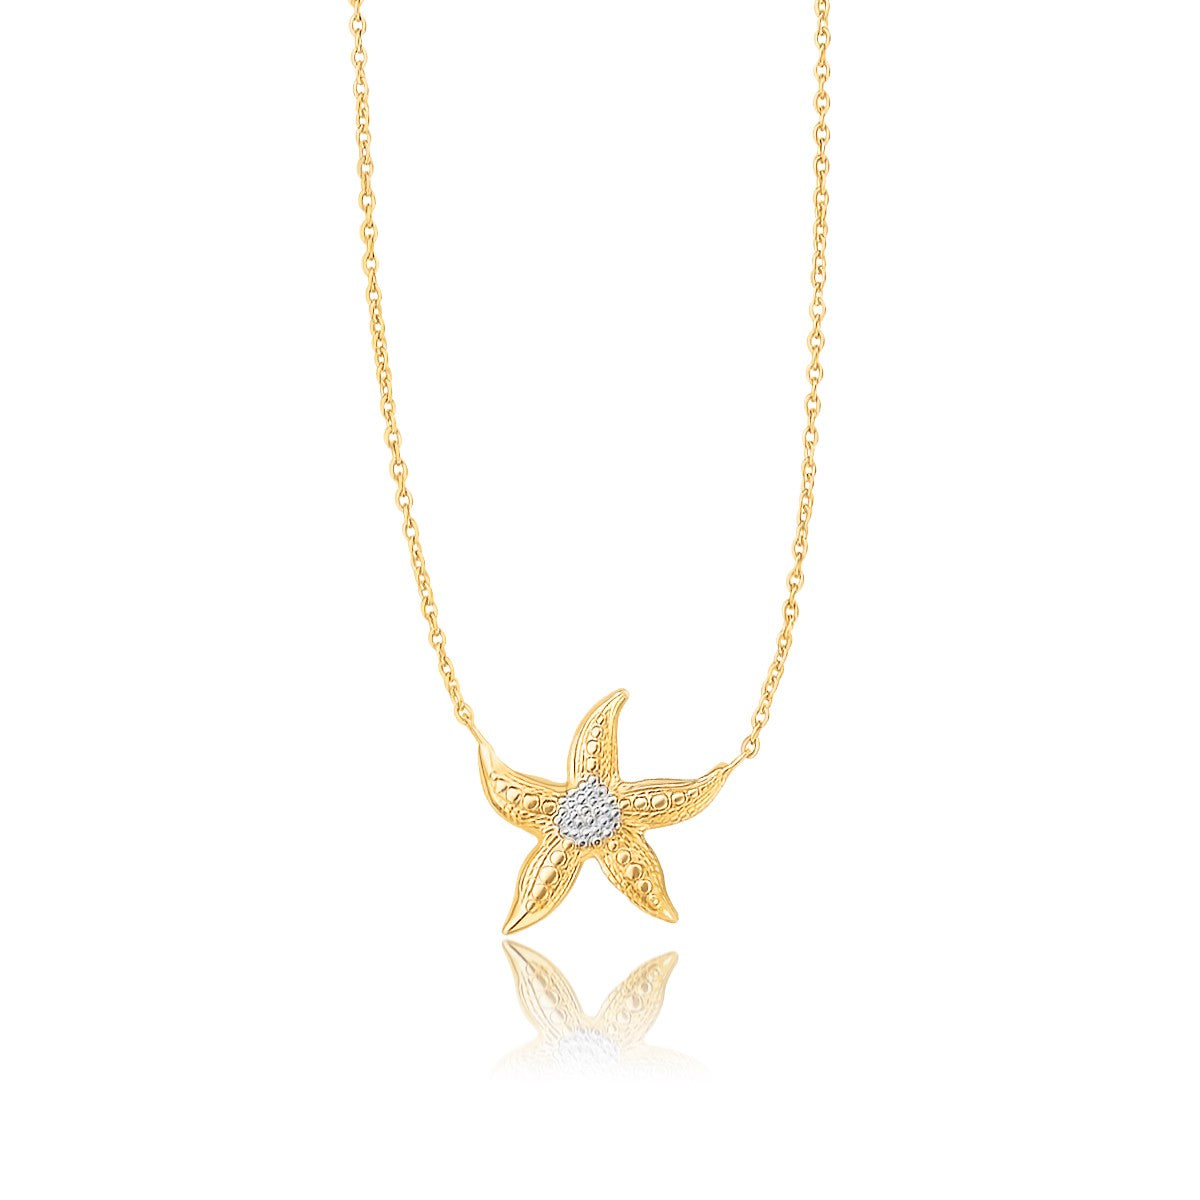 Sea Life Starfish Necklace in 14k Two-Tone Gold